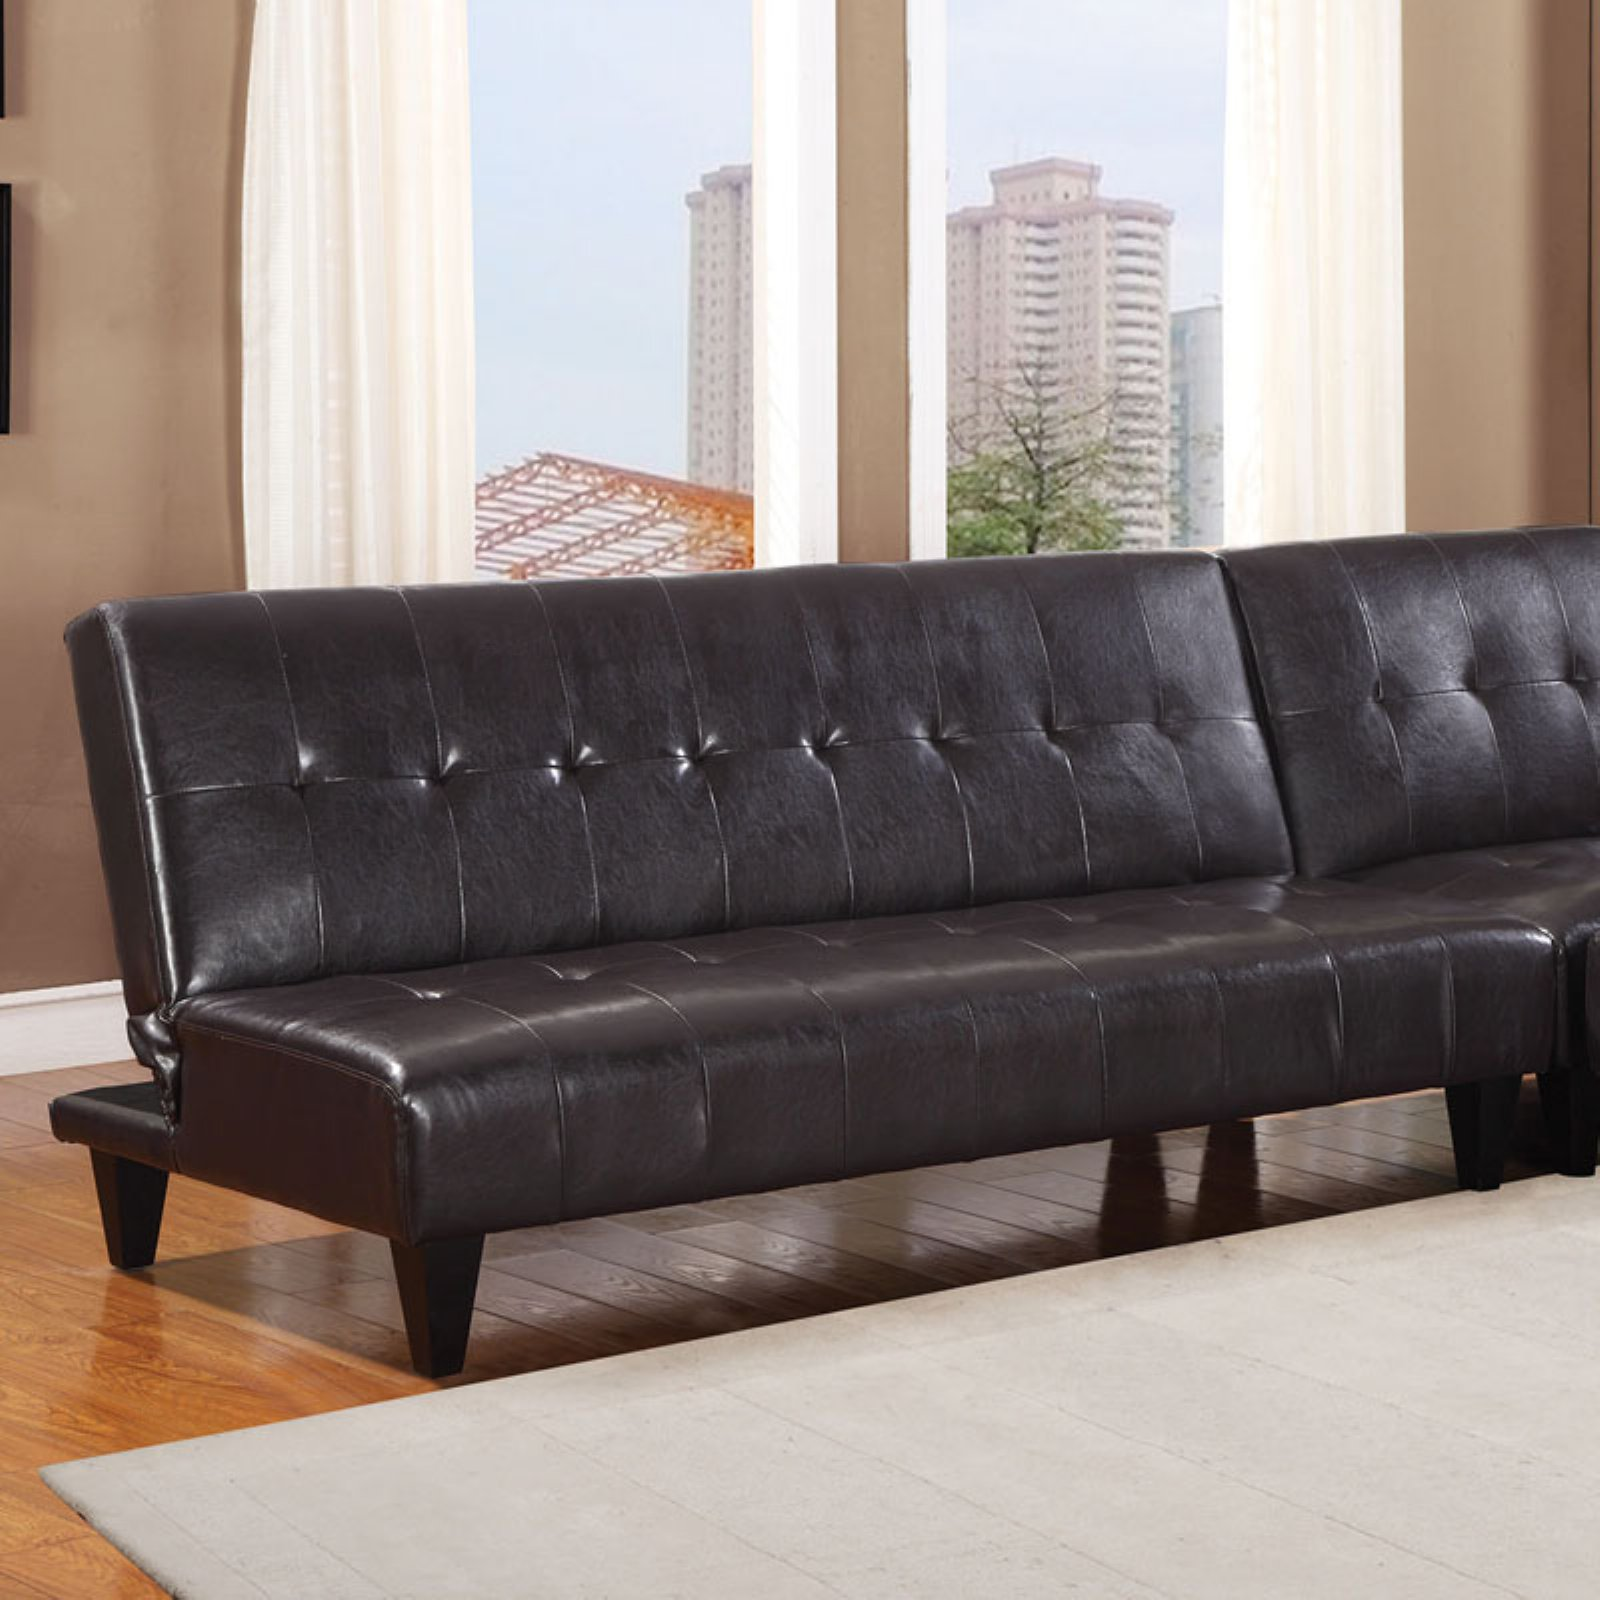 Futon Factory Paris Faux Leather Bycast Adjustable Futon Sofa Multiple Colors